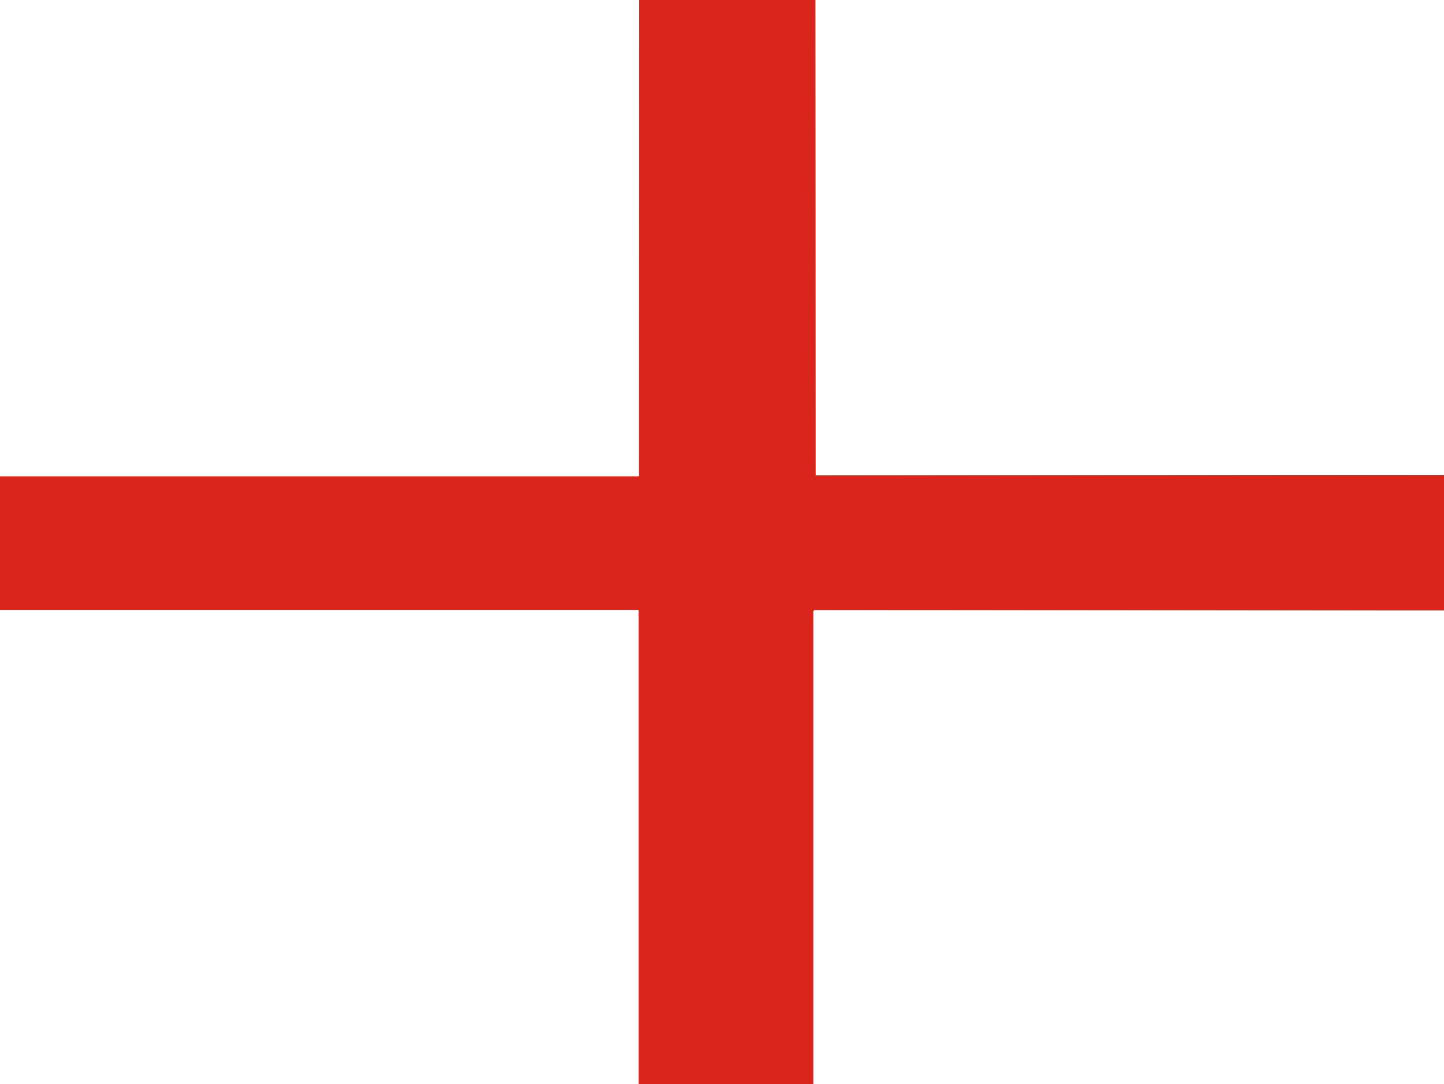 FLAG PICTURES FLAGS OF STATES Large England Flag Pictures 1444x1084